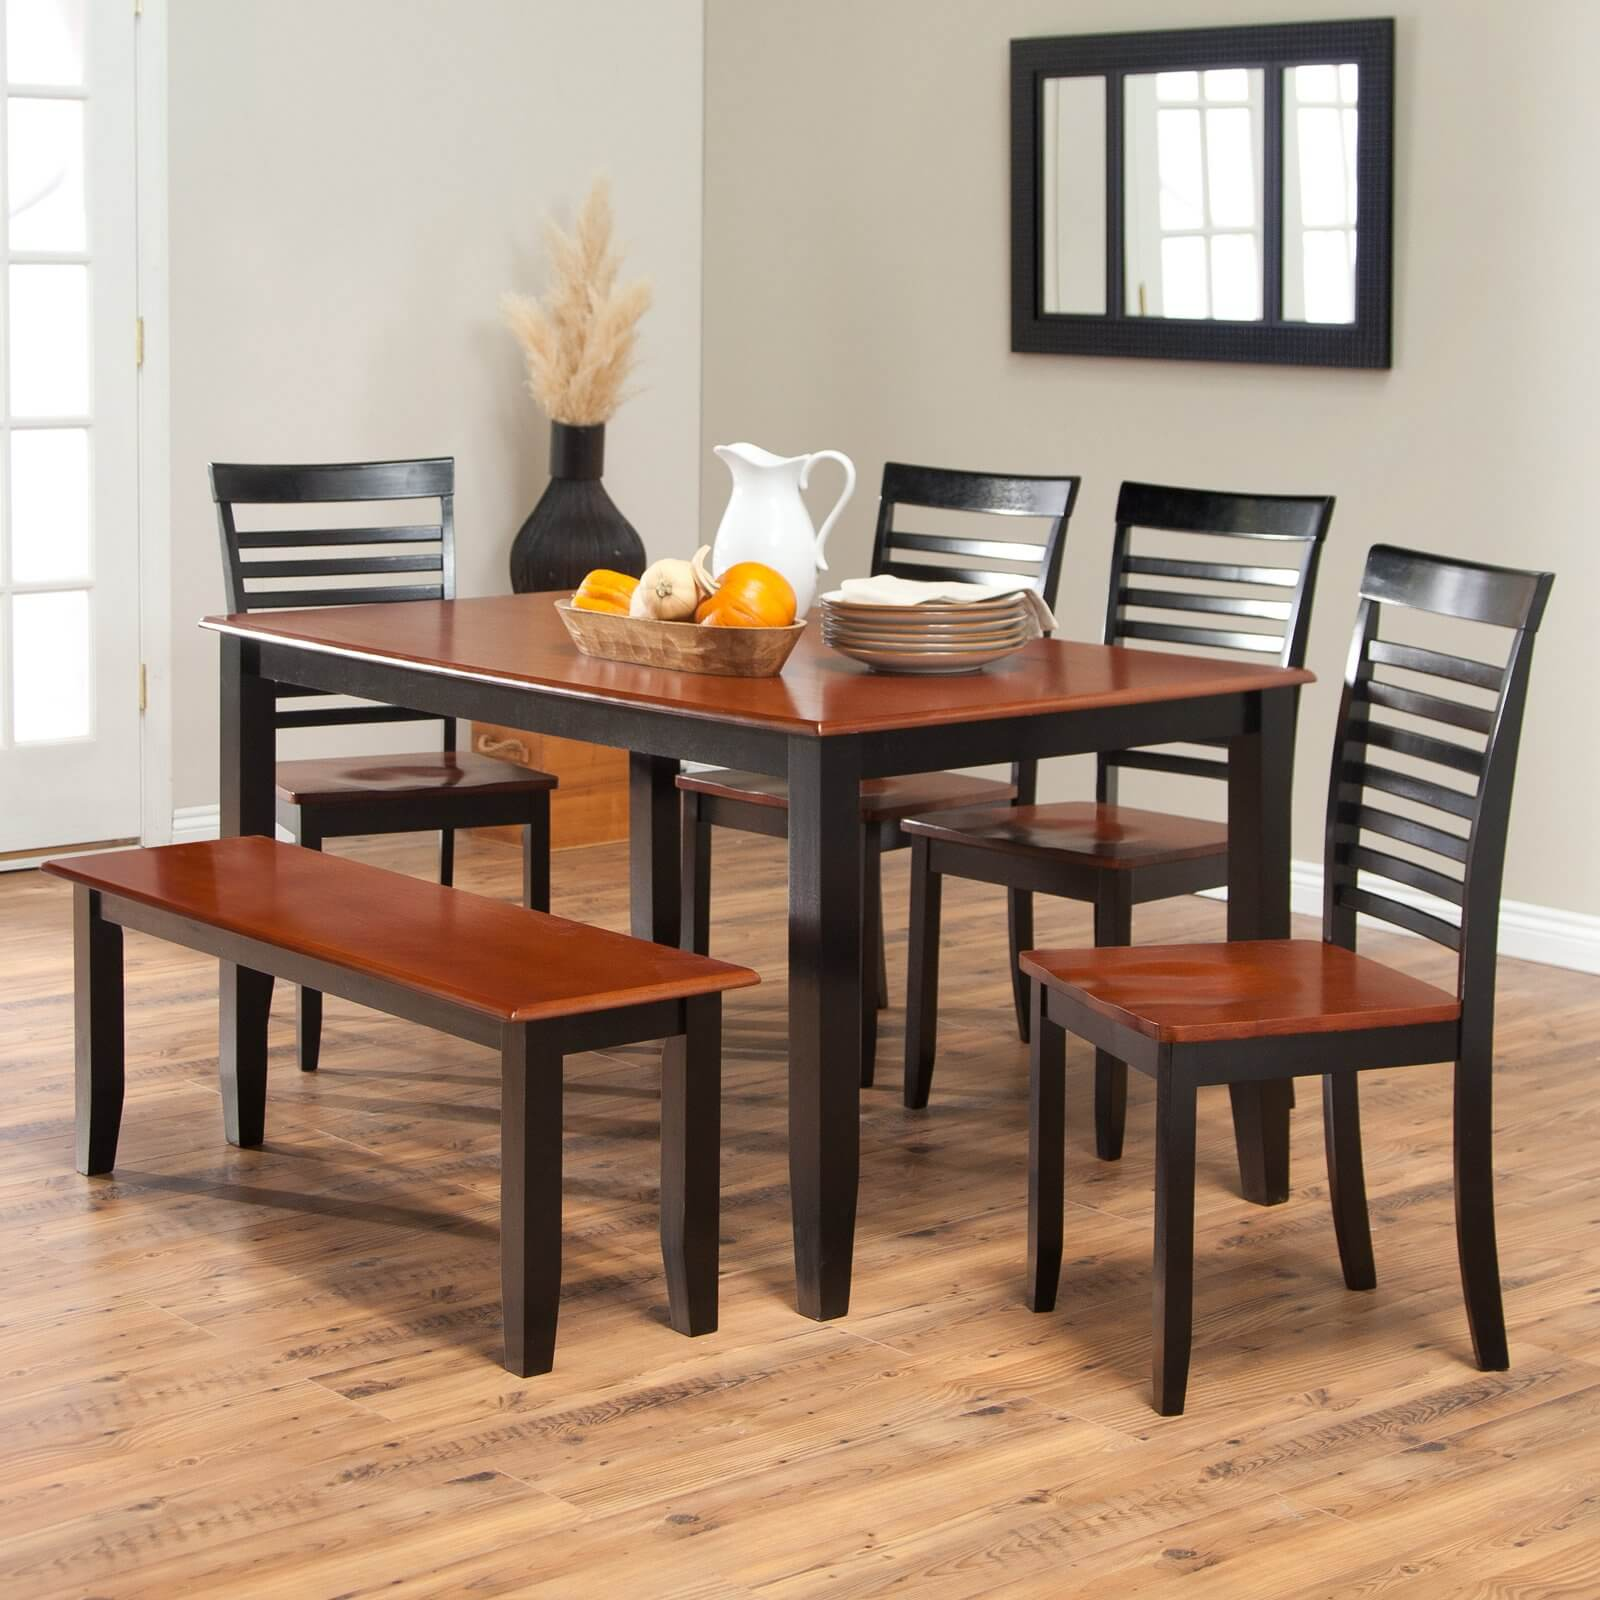 hay simple two toned dining set with bench the seats and table top